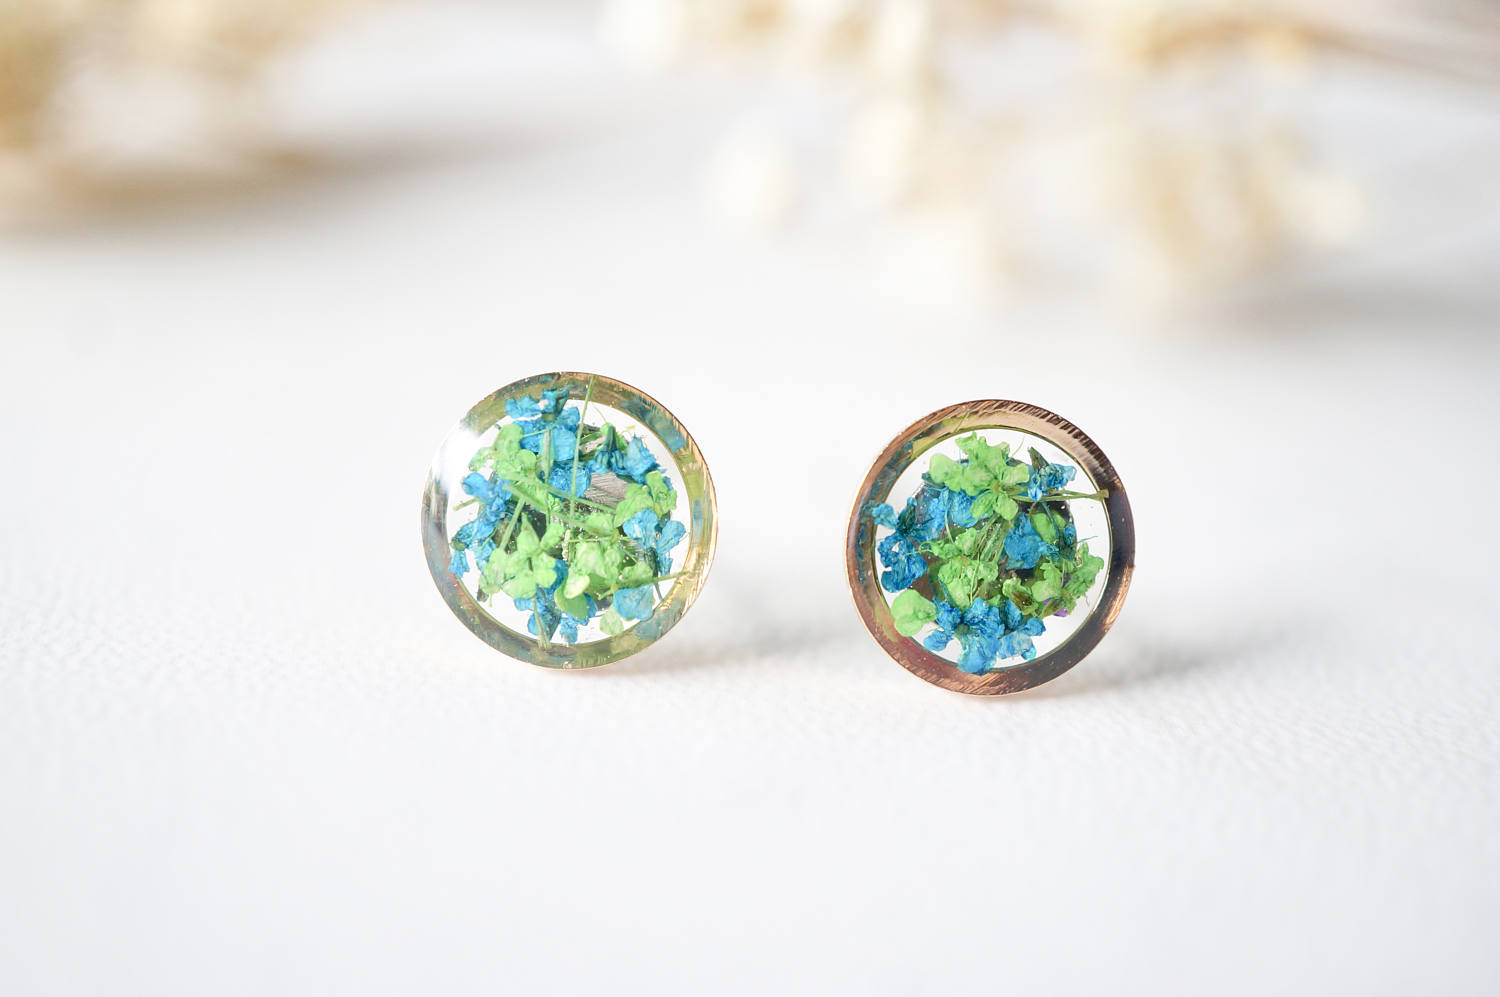 Real Dried Flowers and Resin Stud Earrings, Rose Gold Circle in Green and Blue